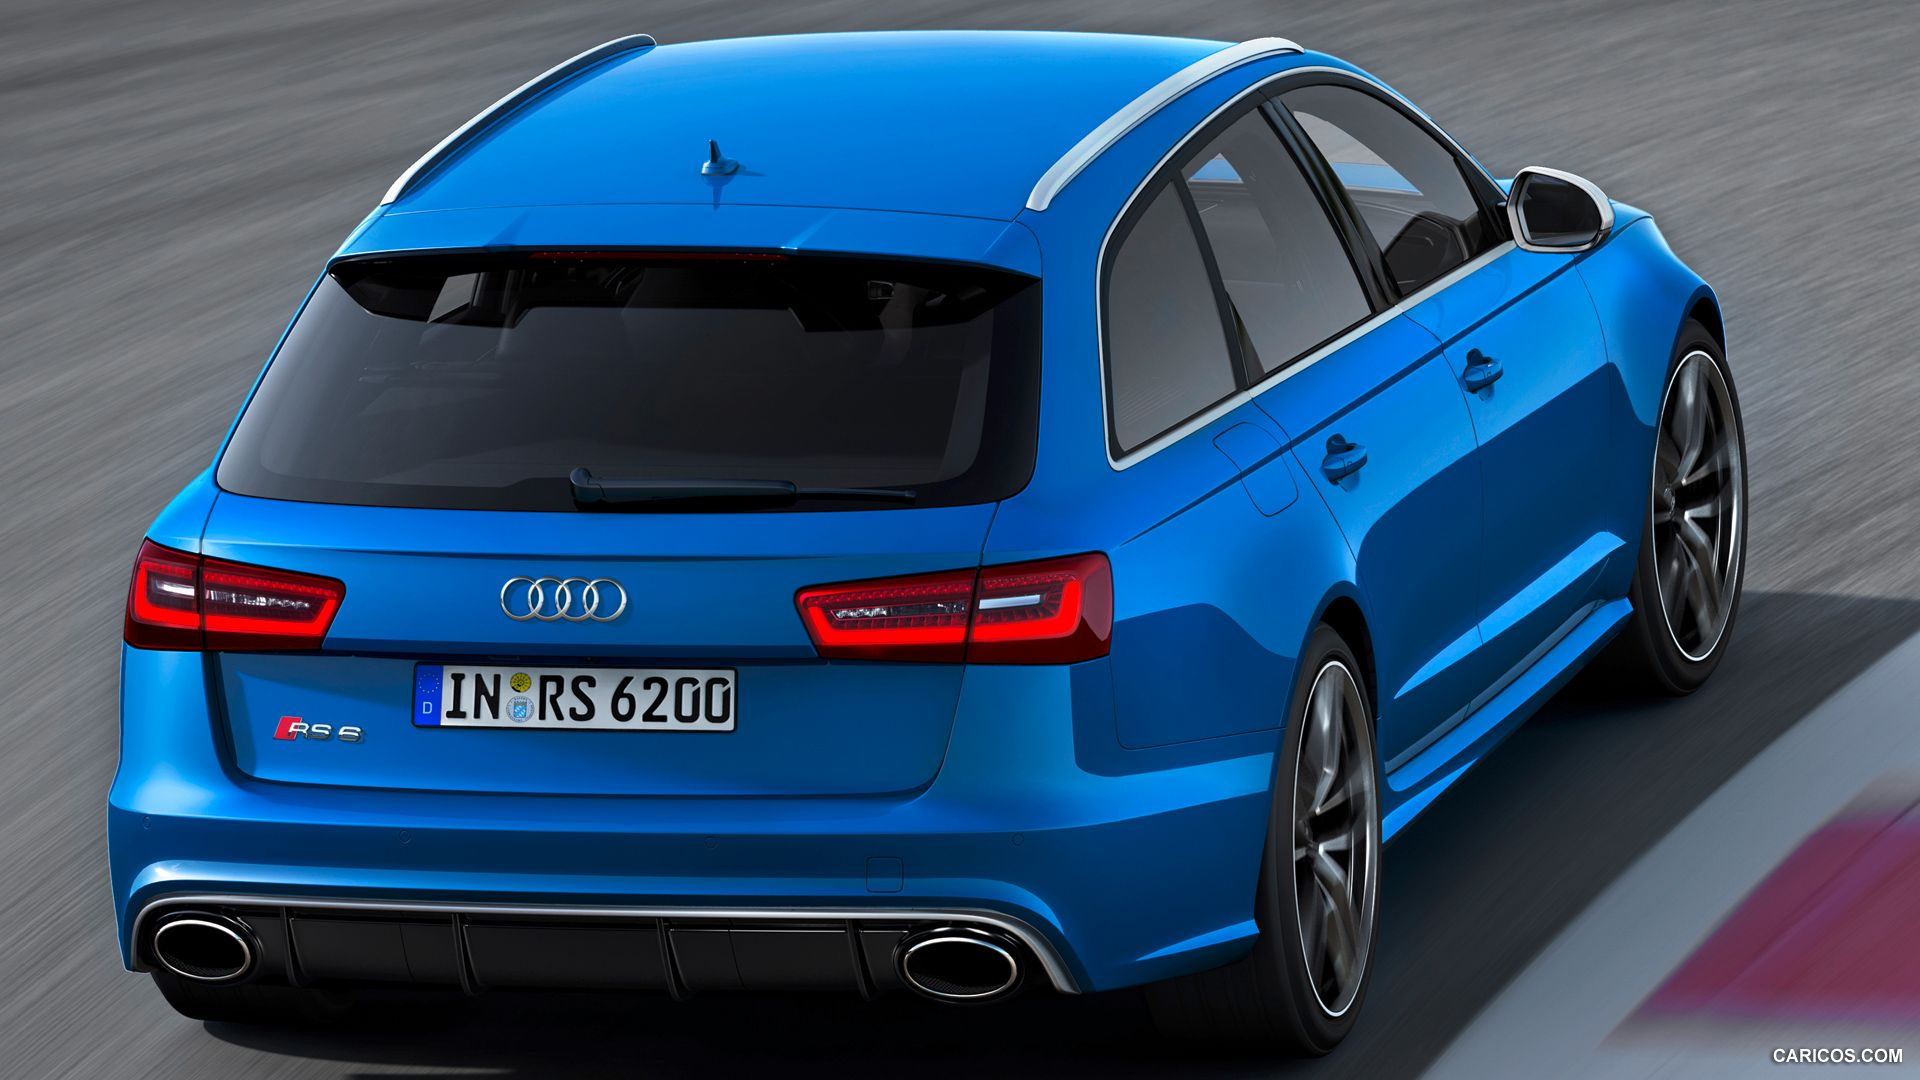 2014 Audi RS6 Avant Wallpaper